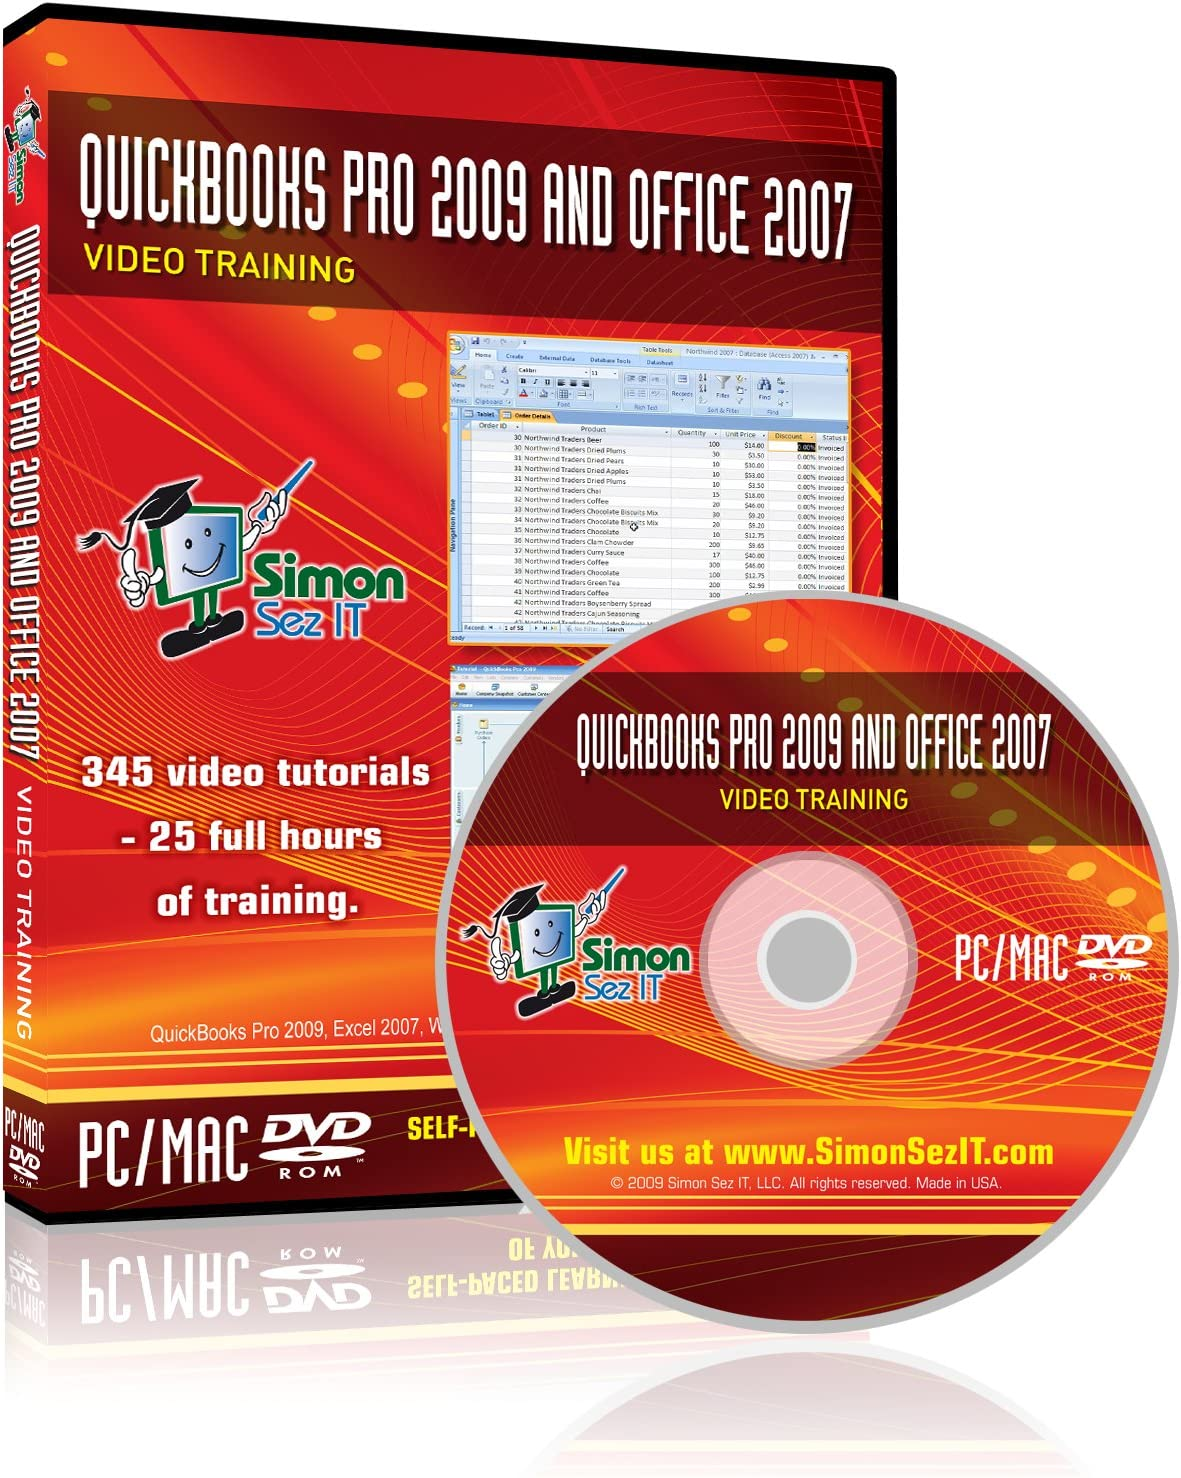 QuickBooks Pro 2009 and Microsoft Office 2007 Training DVD - Video Training Tutorials for QuickBooks Pro 2009, Excel, Word, PowerPoint, Outlook, and Access 2007 by Simon Sez IT